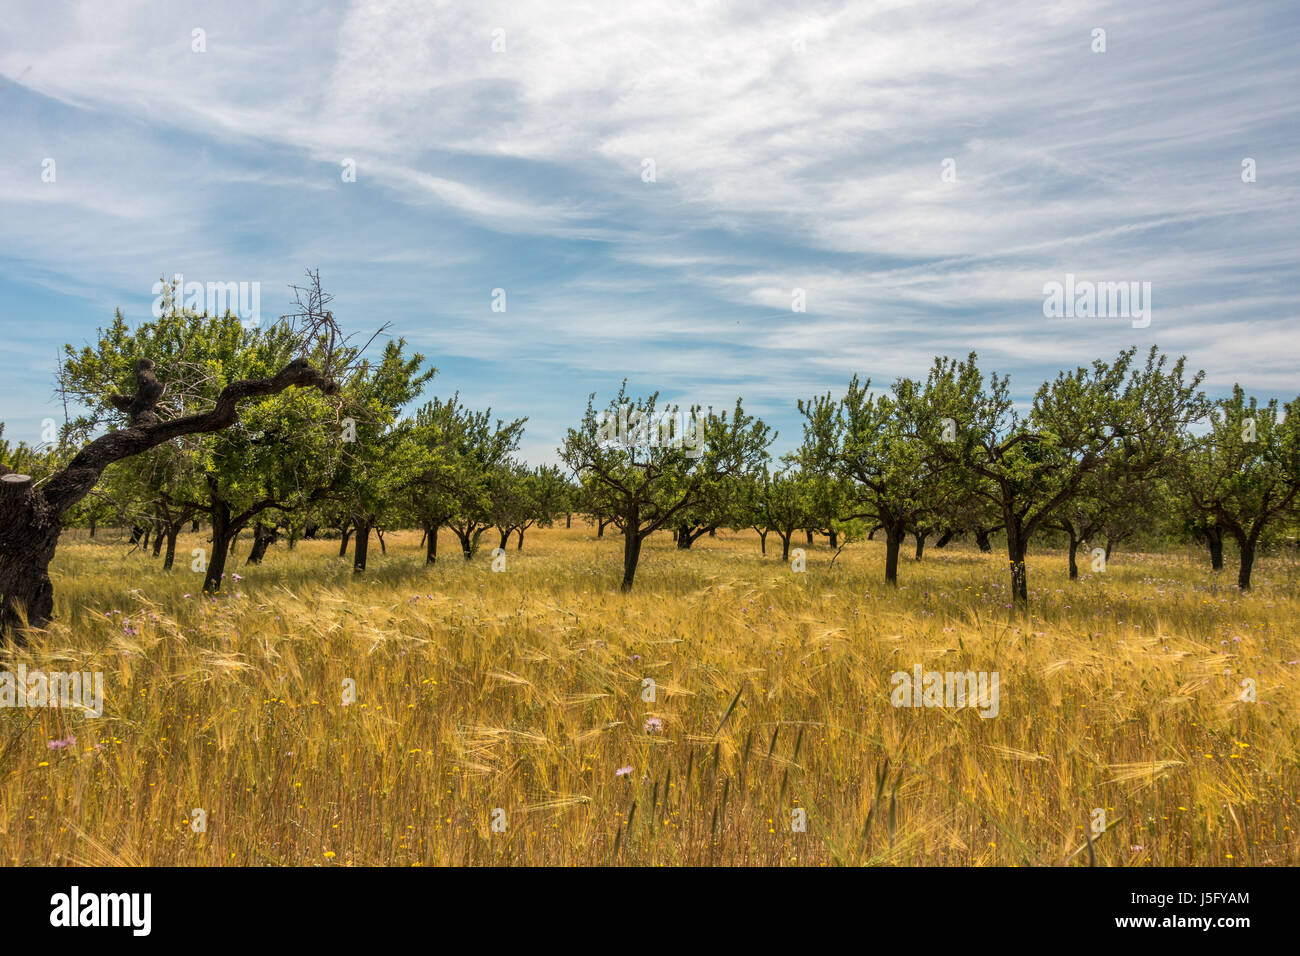 Farming in Mallorca with trees and cereals being grown, Majorca, Balearic Islands, Spain Stock Photo